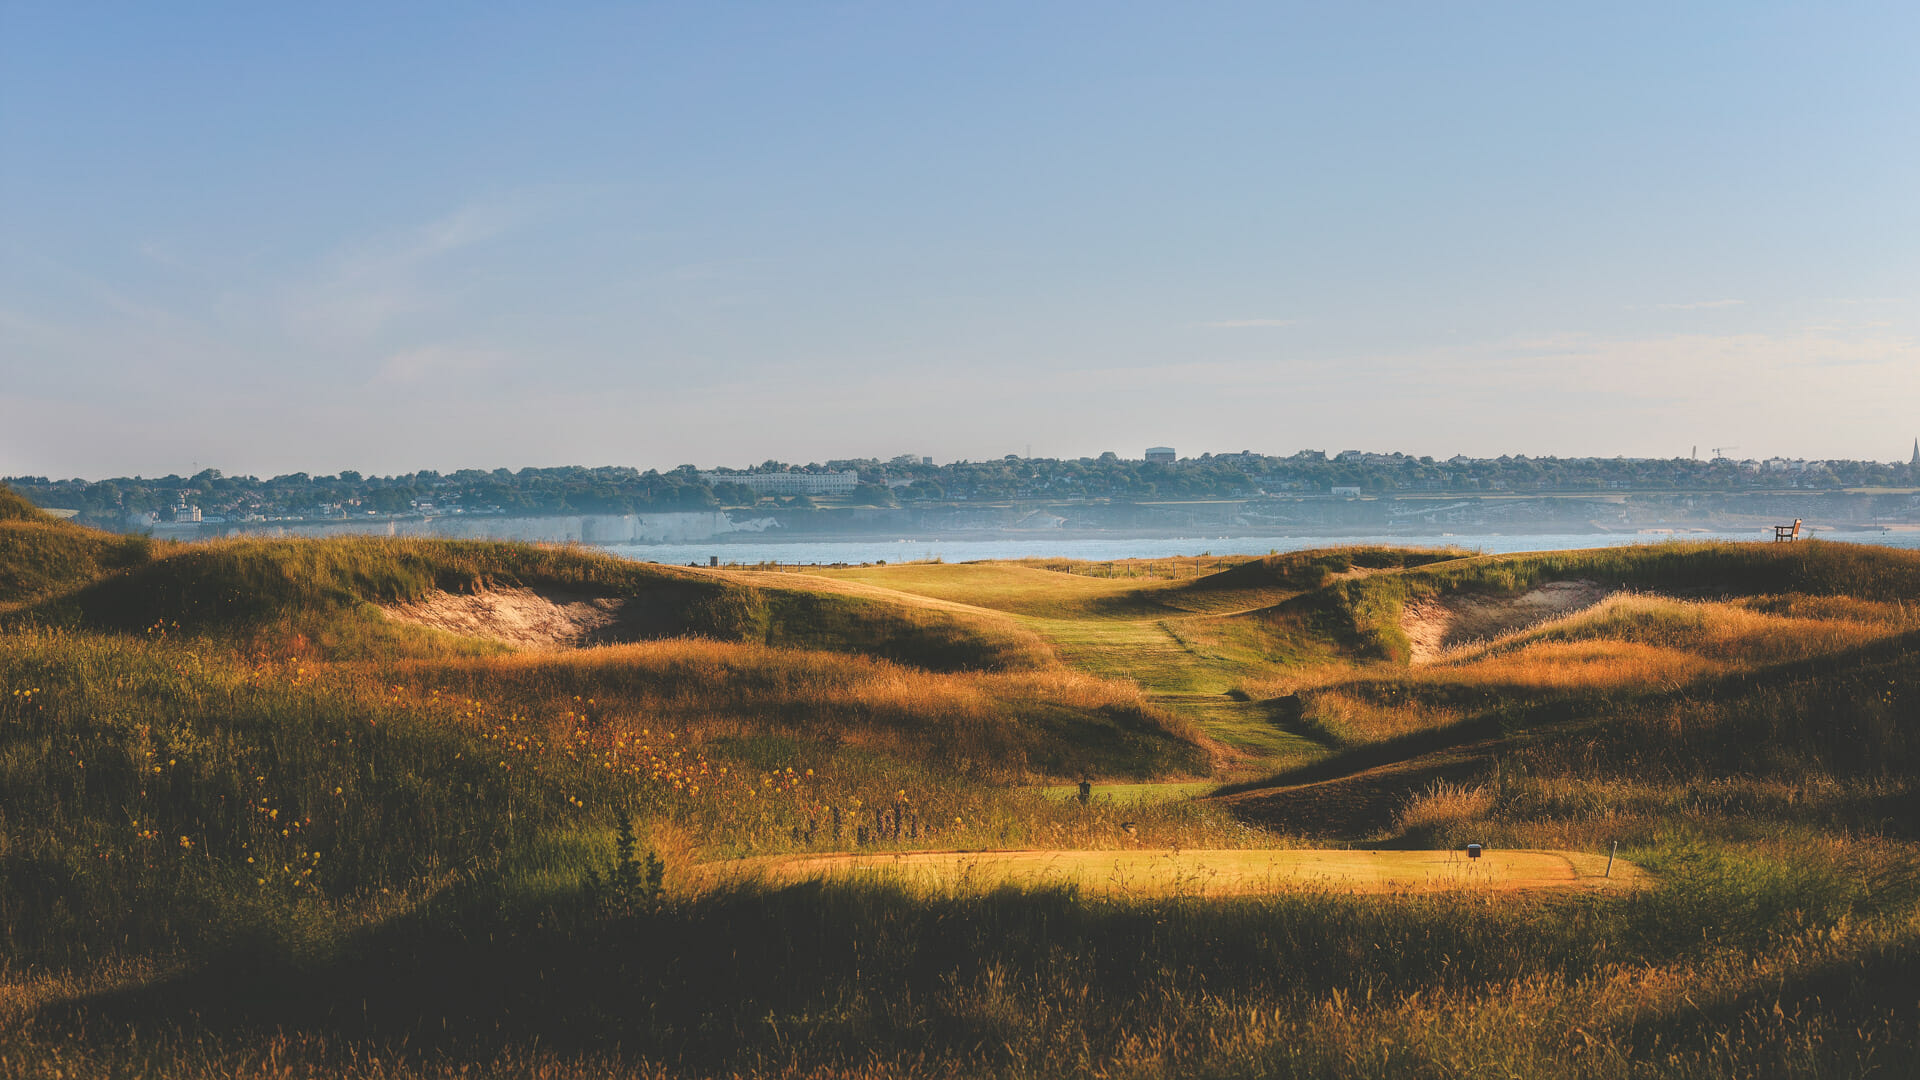 Image from the 7th tee looking out to Pegwell Bay at Royal St. George's Golf Course, Kent, England